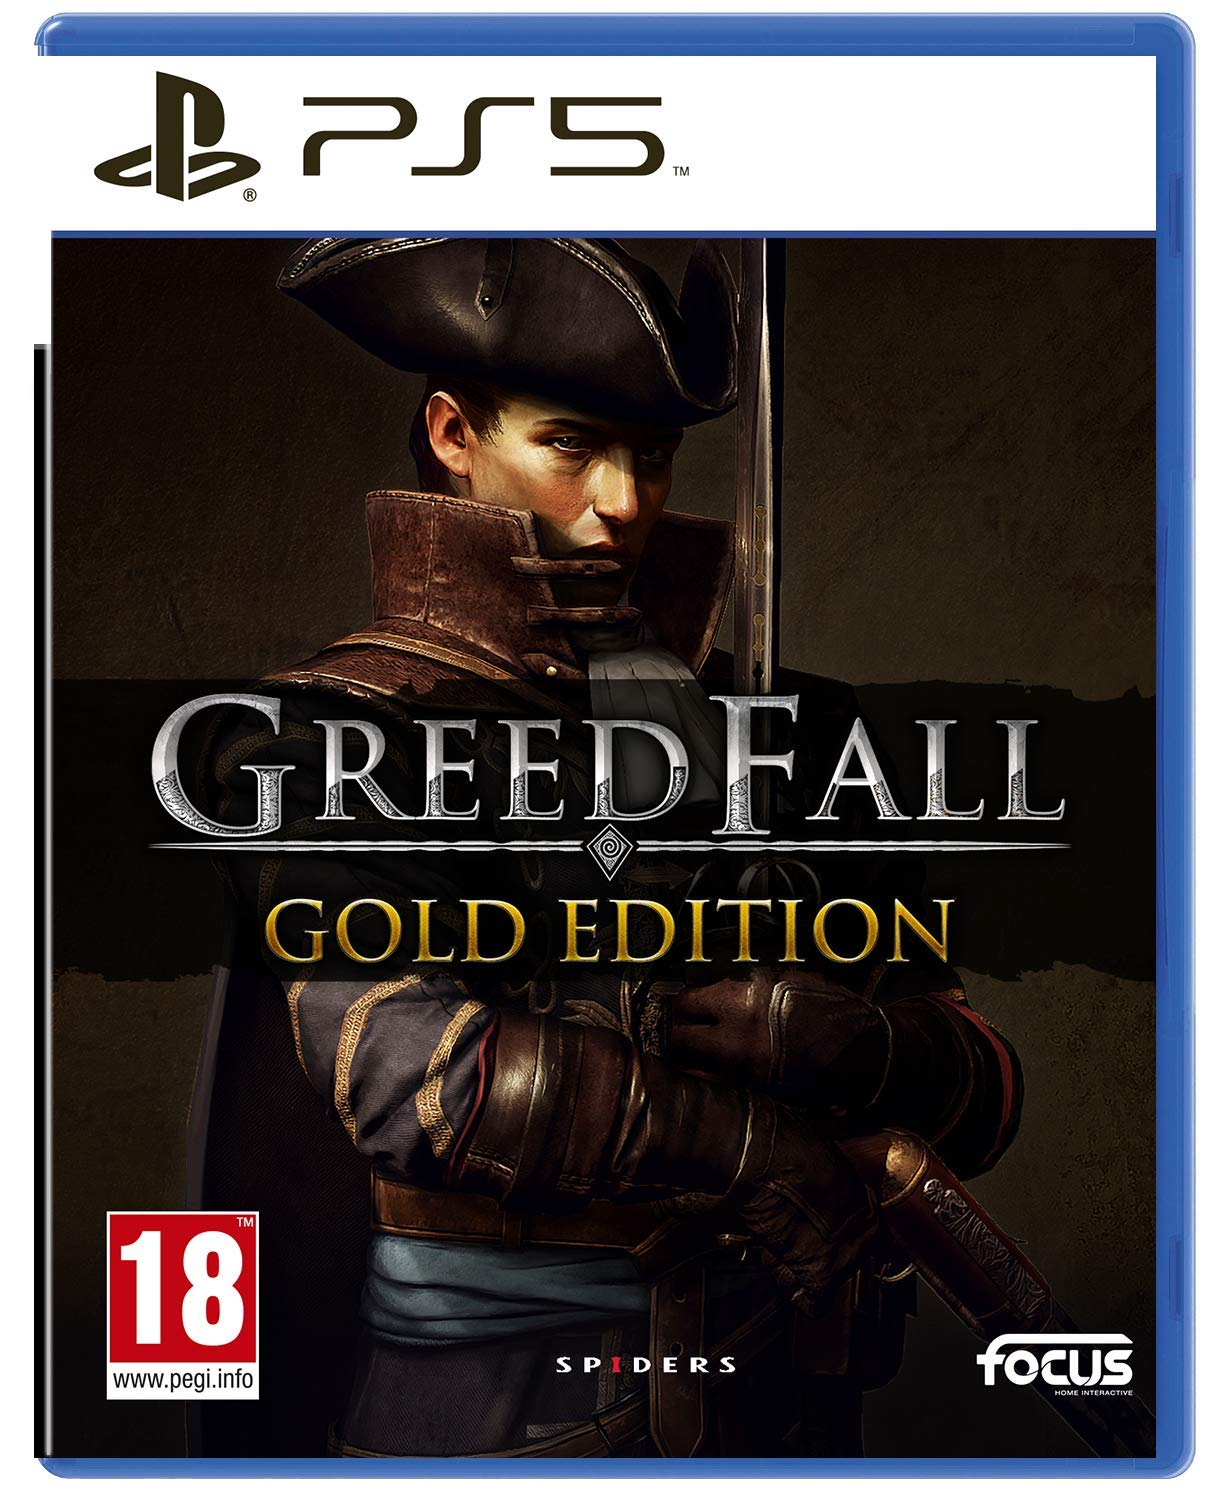 All items in the store FOCUS 2021 model HOME INTERACTIVE GreedFall PS5 Gold Edition